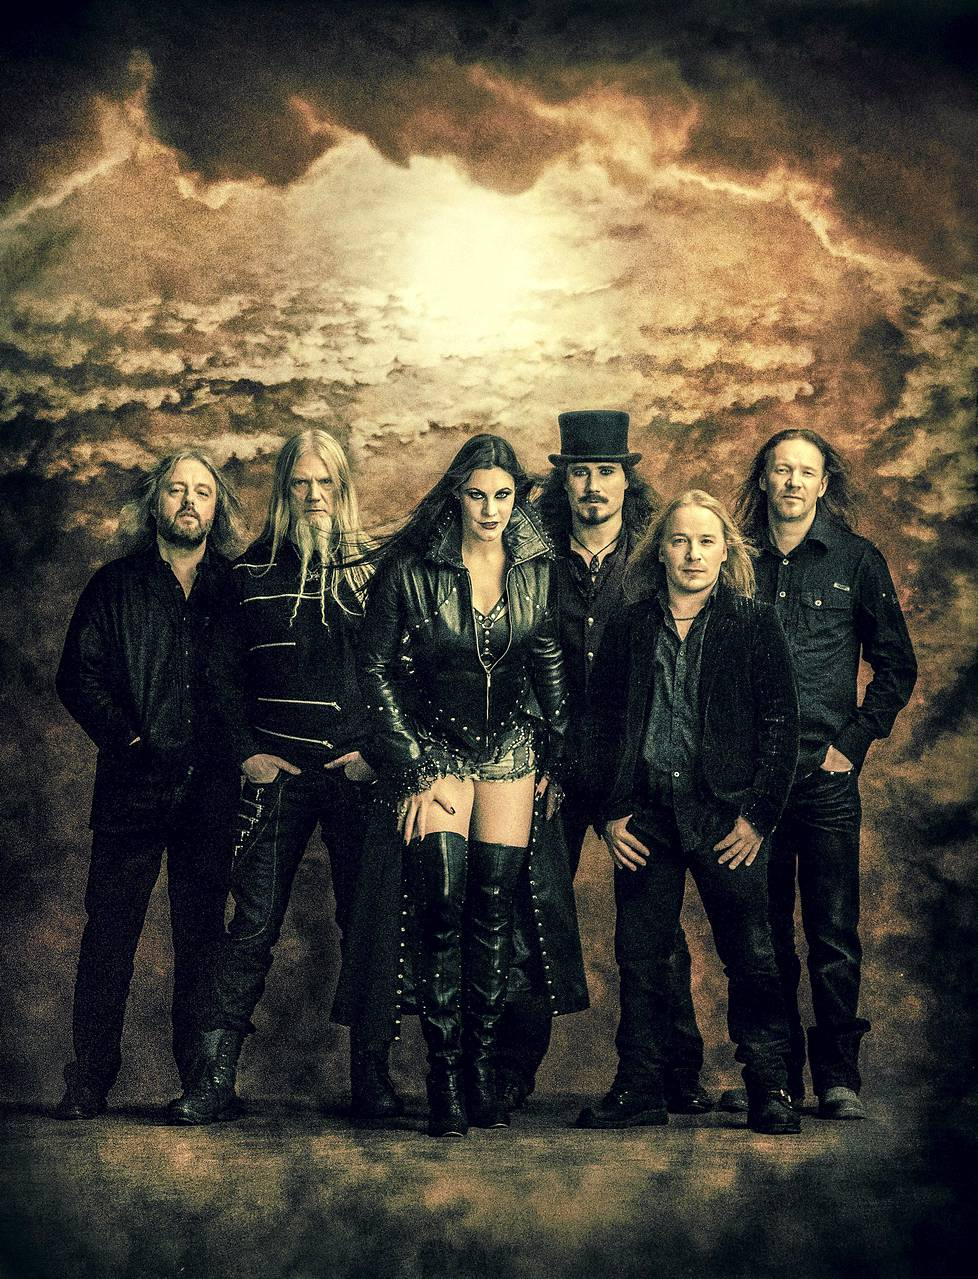 The current line-up of Nightwish: Troy Donockley, Marco Hietala, Floor Jansen, Tuomas Holopainen, Emppu Vuorinen and Kai Hahto.